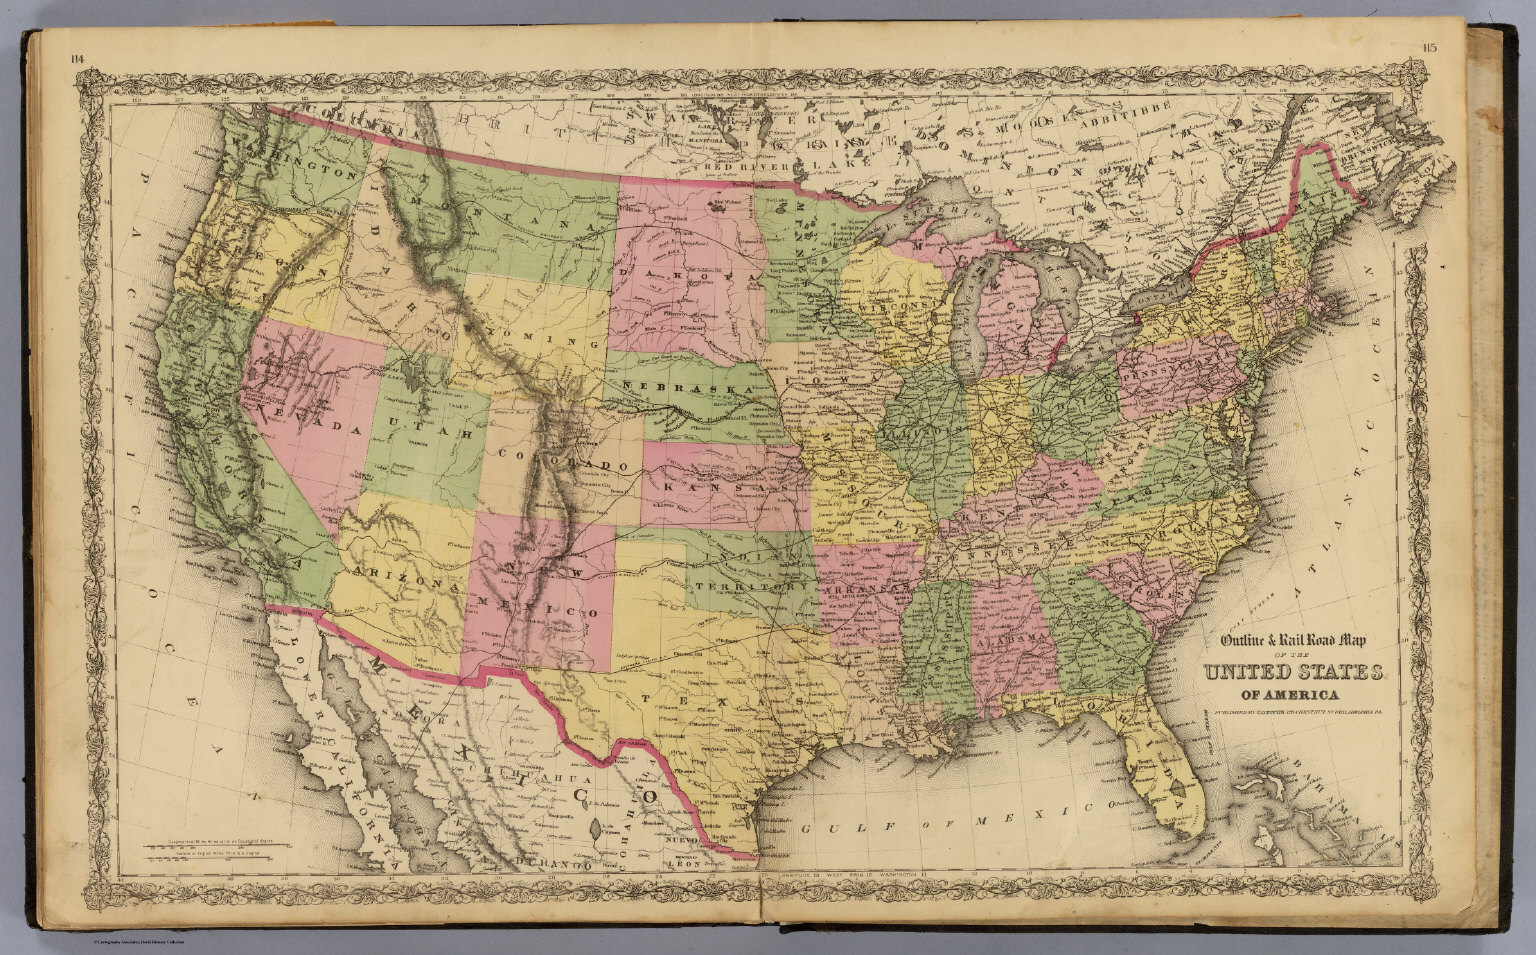 United States David Rumsey Historical Map Collection - Us map 1869